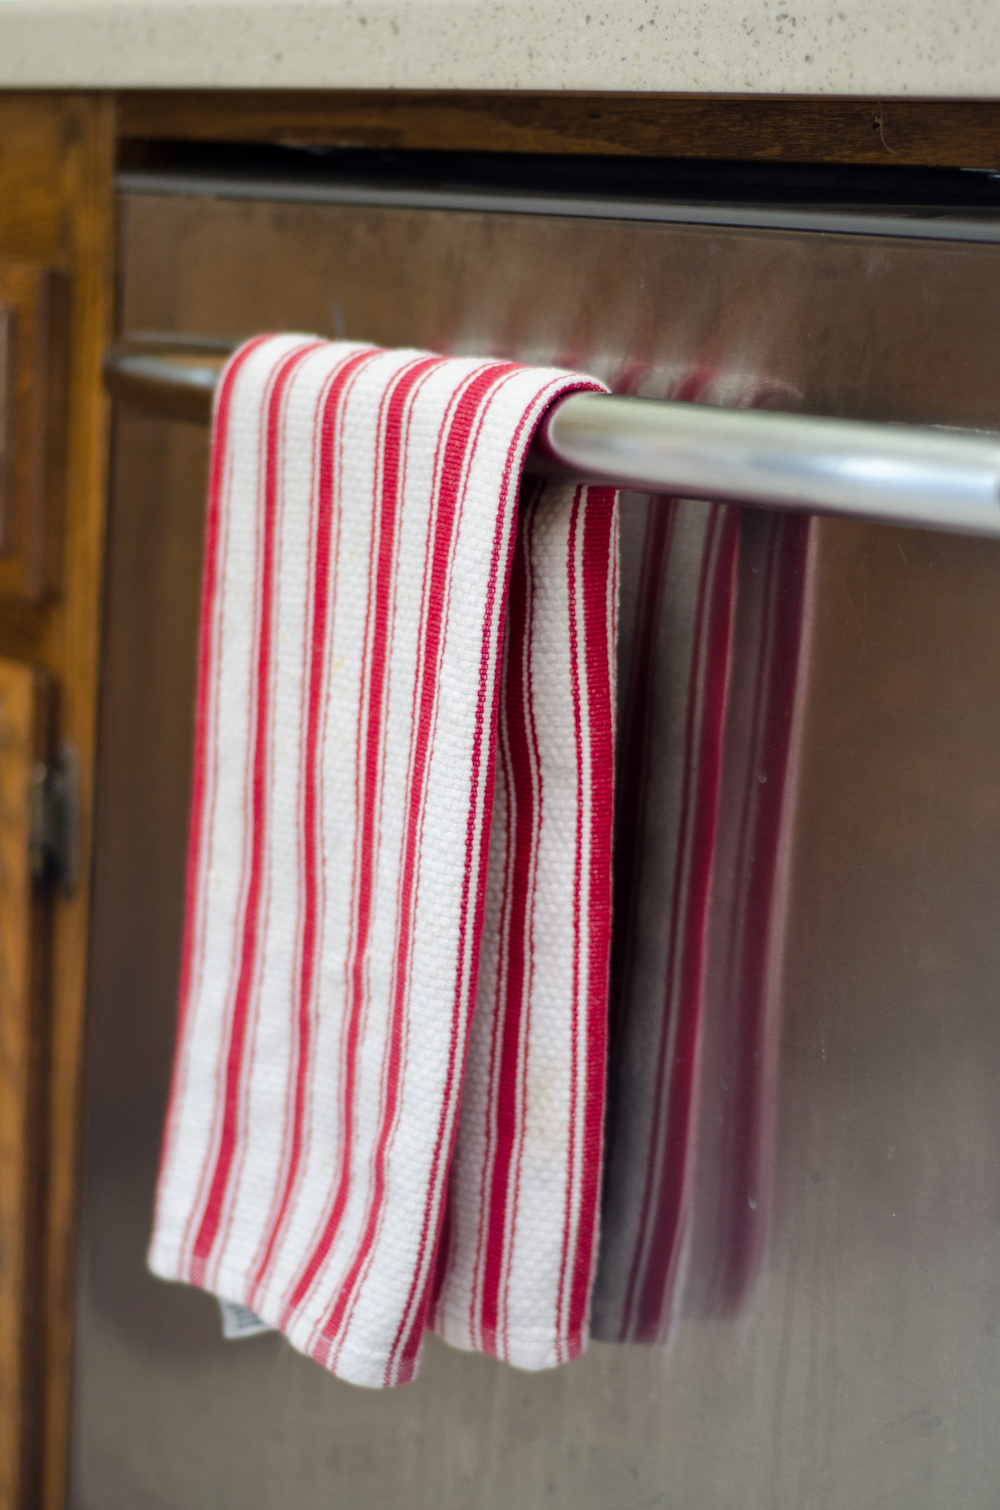 Here's Why You Might Want to Hang a Dish Towel on Your Dishwasher